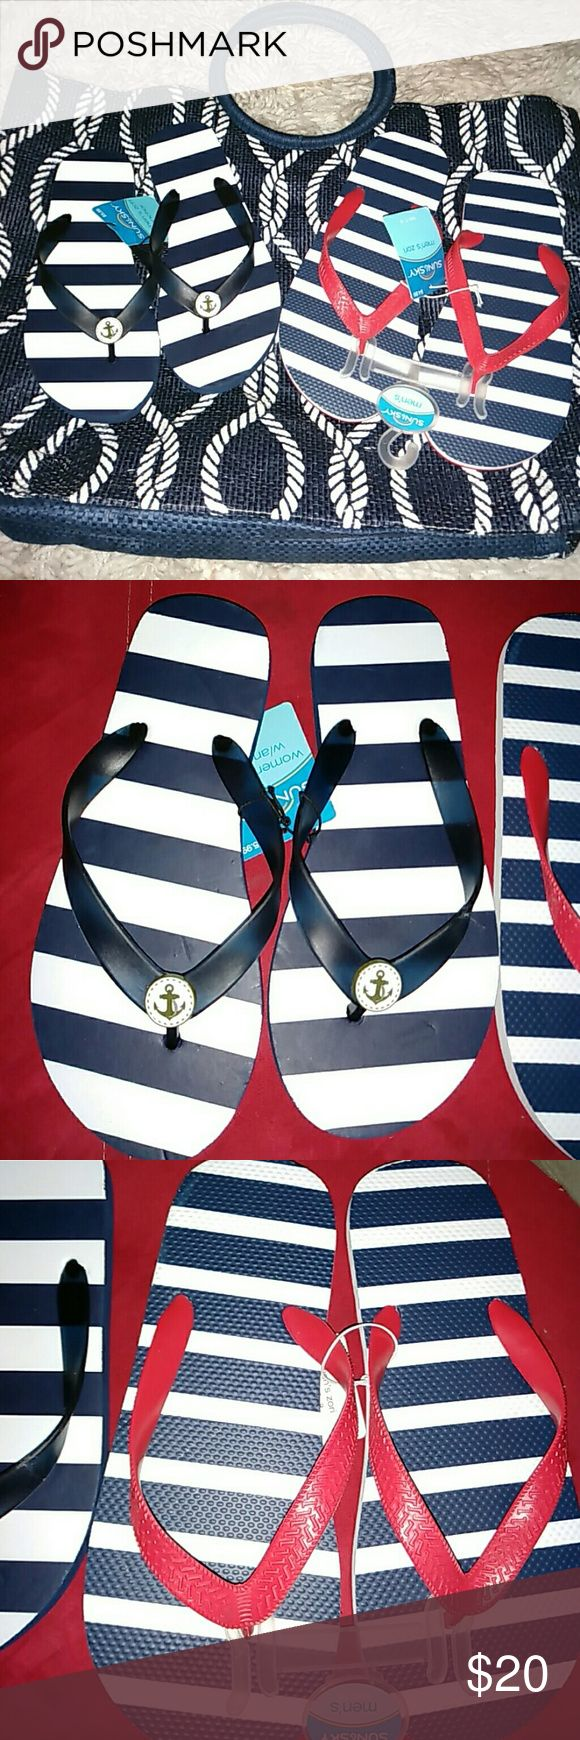 "NWT His n Hers  ""Nautical""  Bundle / W5-6,  M7-8 New Flippies for his and her.  Perfect for a day at the beach! Women's are size 5/6 and men's are size 7/8. If you need different sizes ease inquire as I just may have the size you're looking for! Also a nautical themed tote or beach bag.  Navy blue with white rope pattern and feature two large round handles.  This tote is new without tags. Also special themed gift included with this bundle! Nautical Theme Bundle Shoes Sandals"